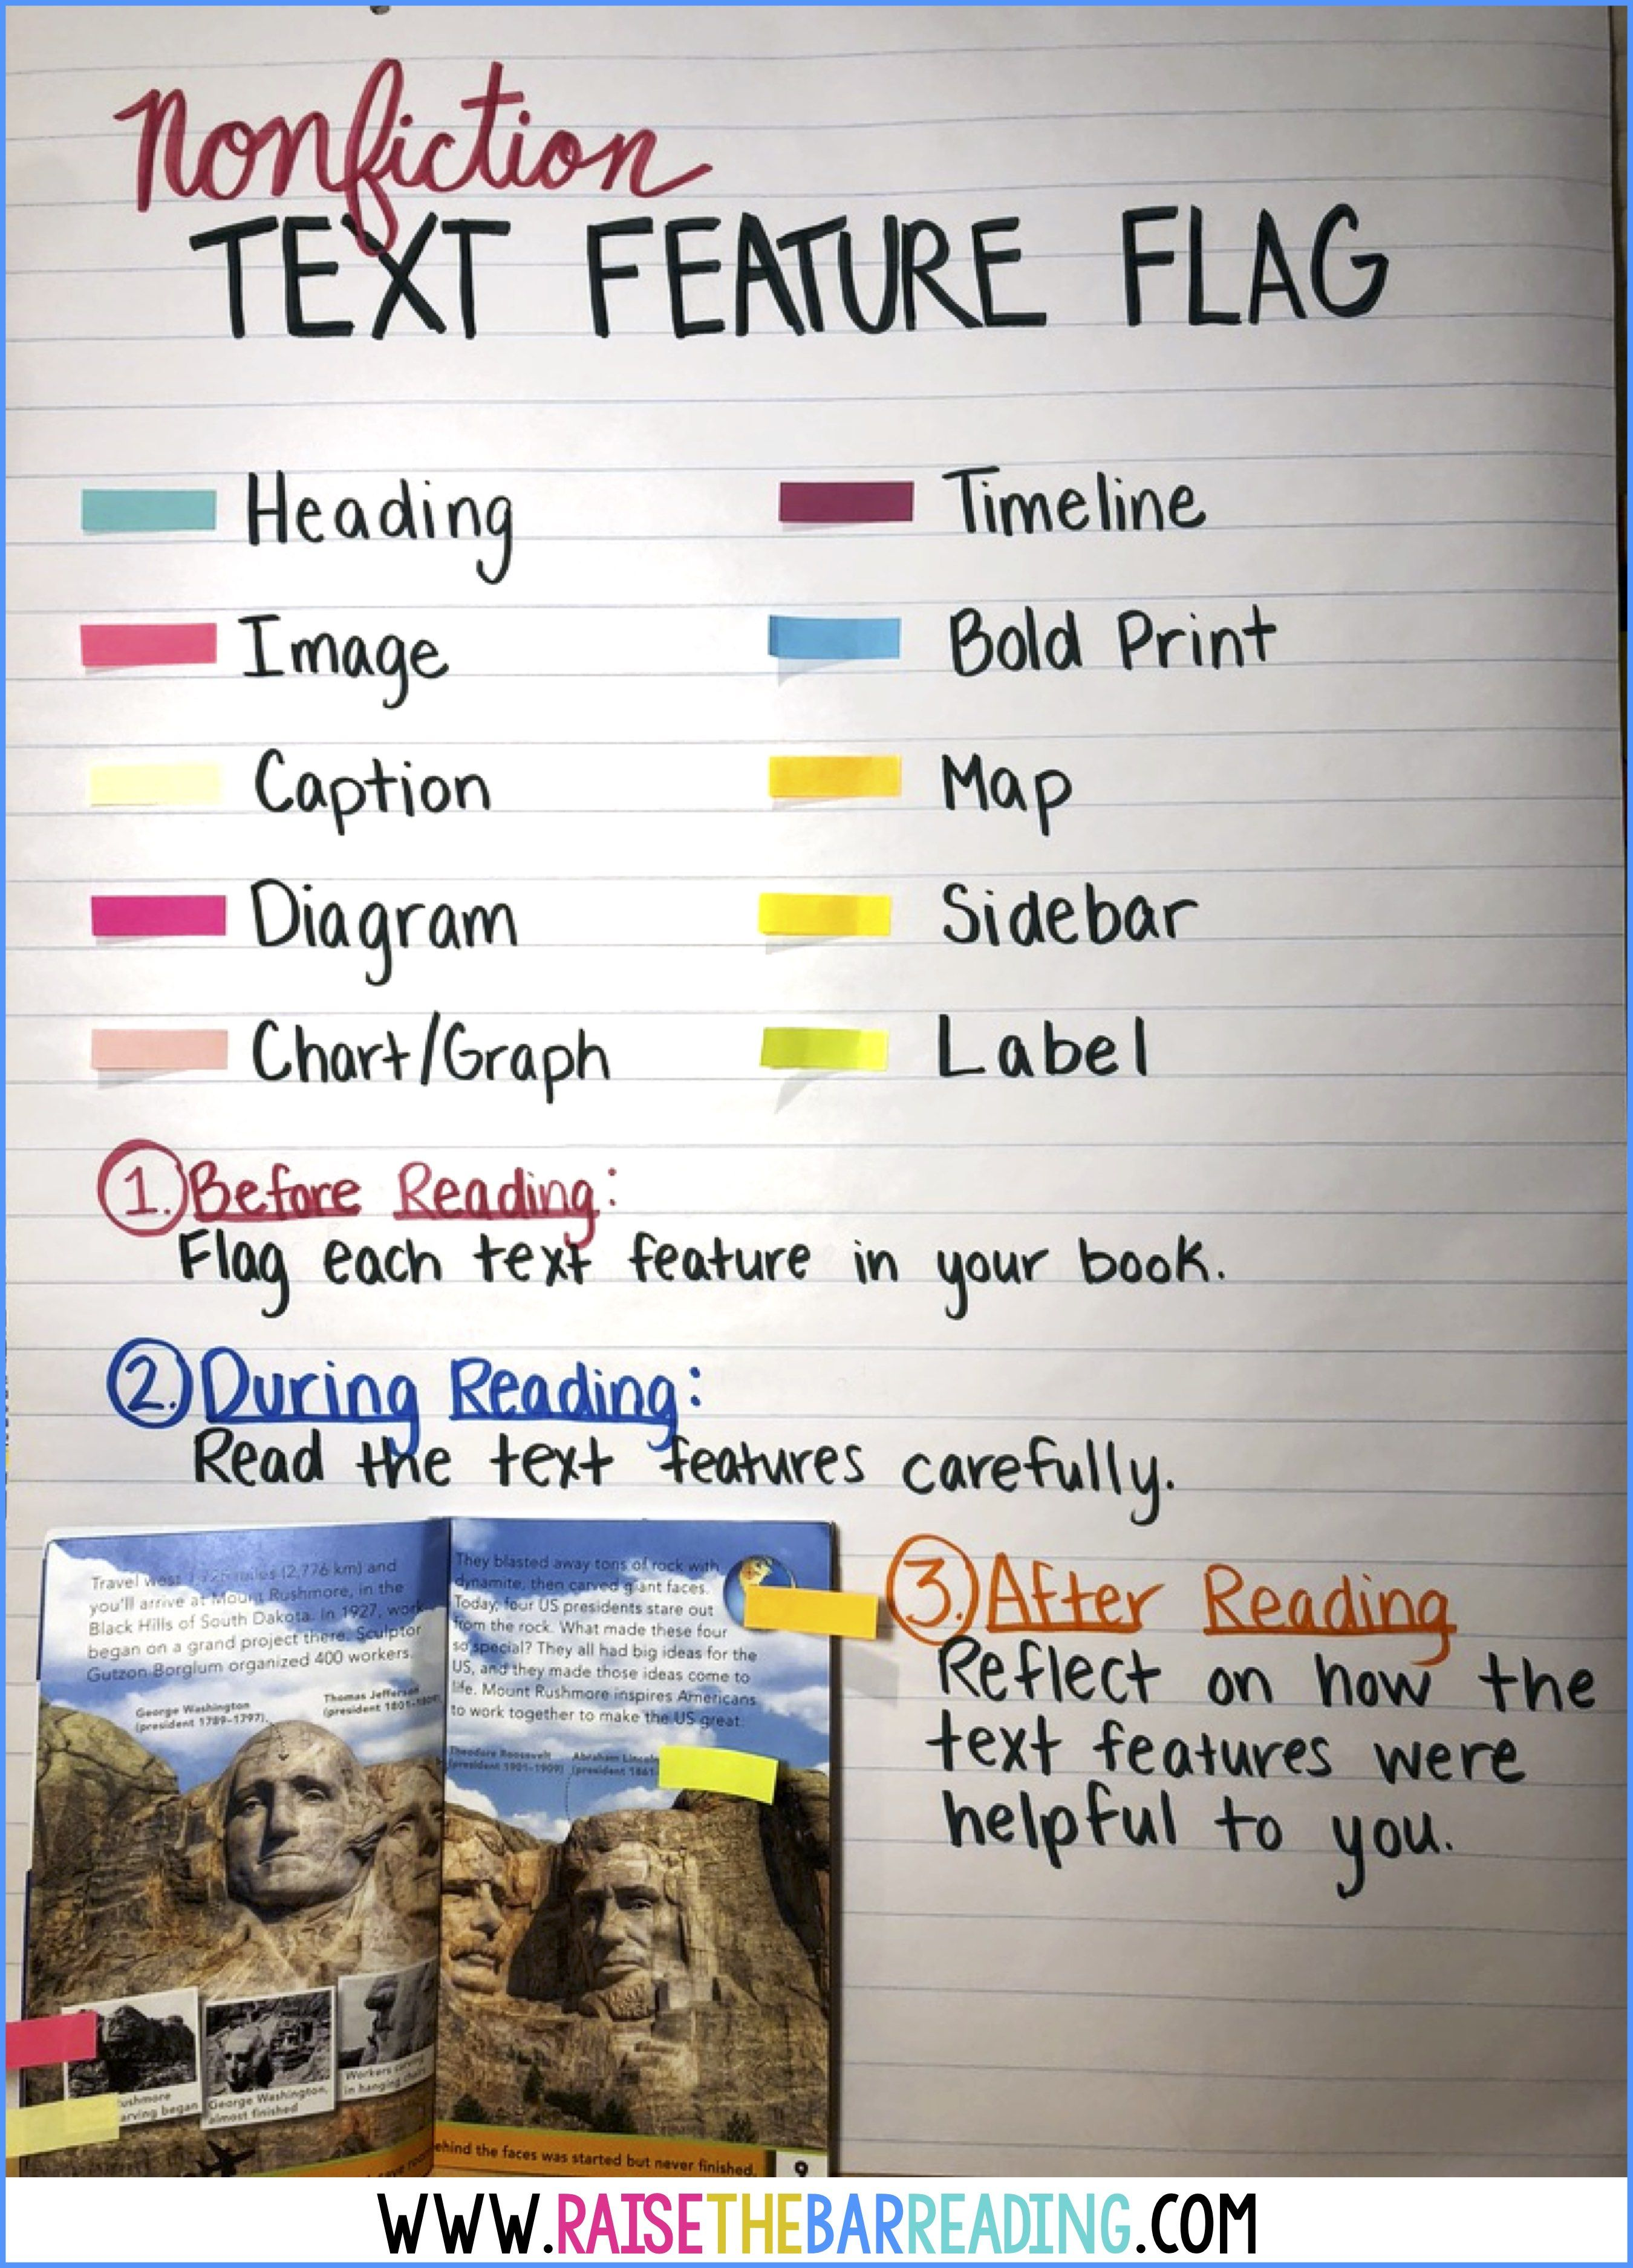 5 Ways To Practice Nonfiction Text Features With Images